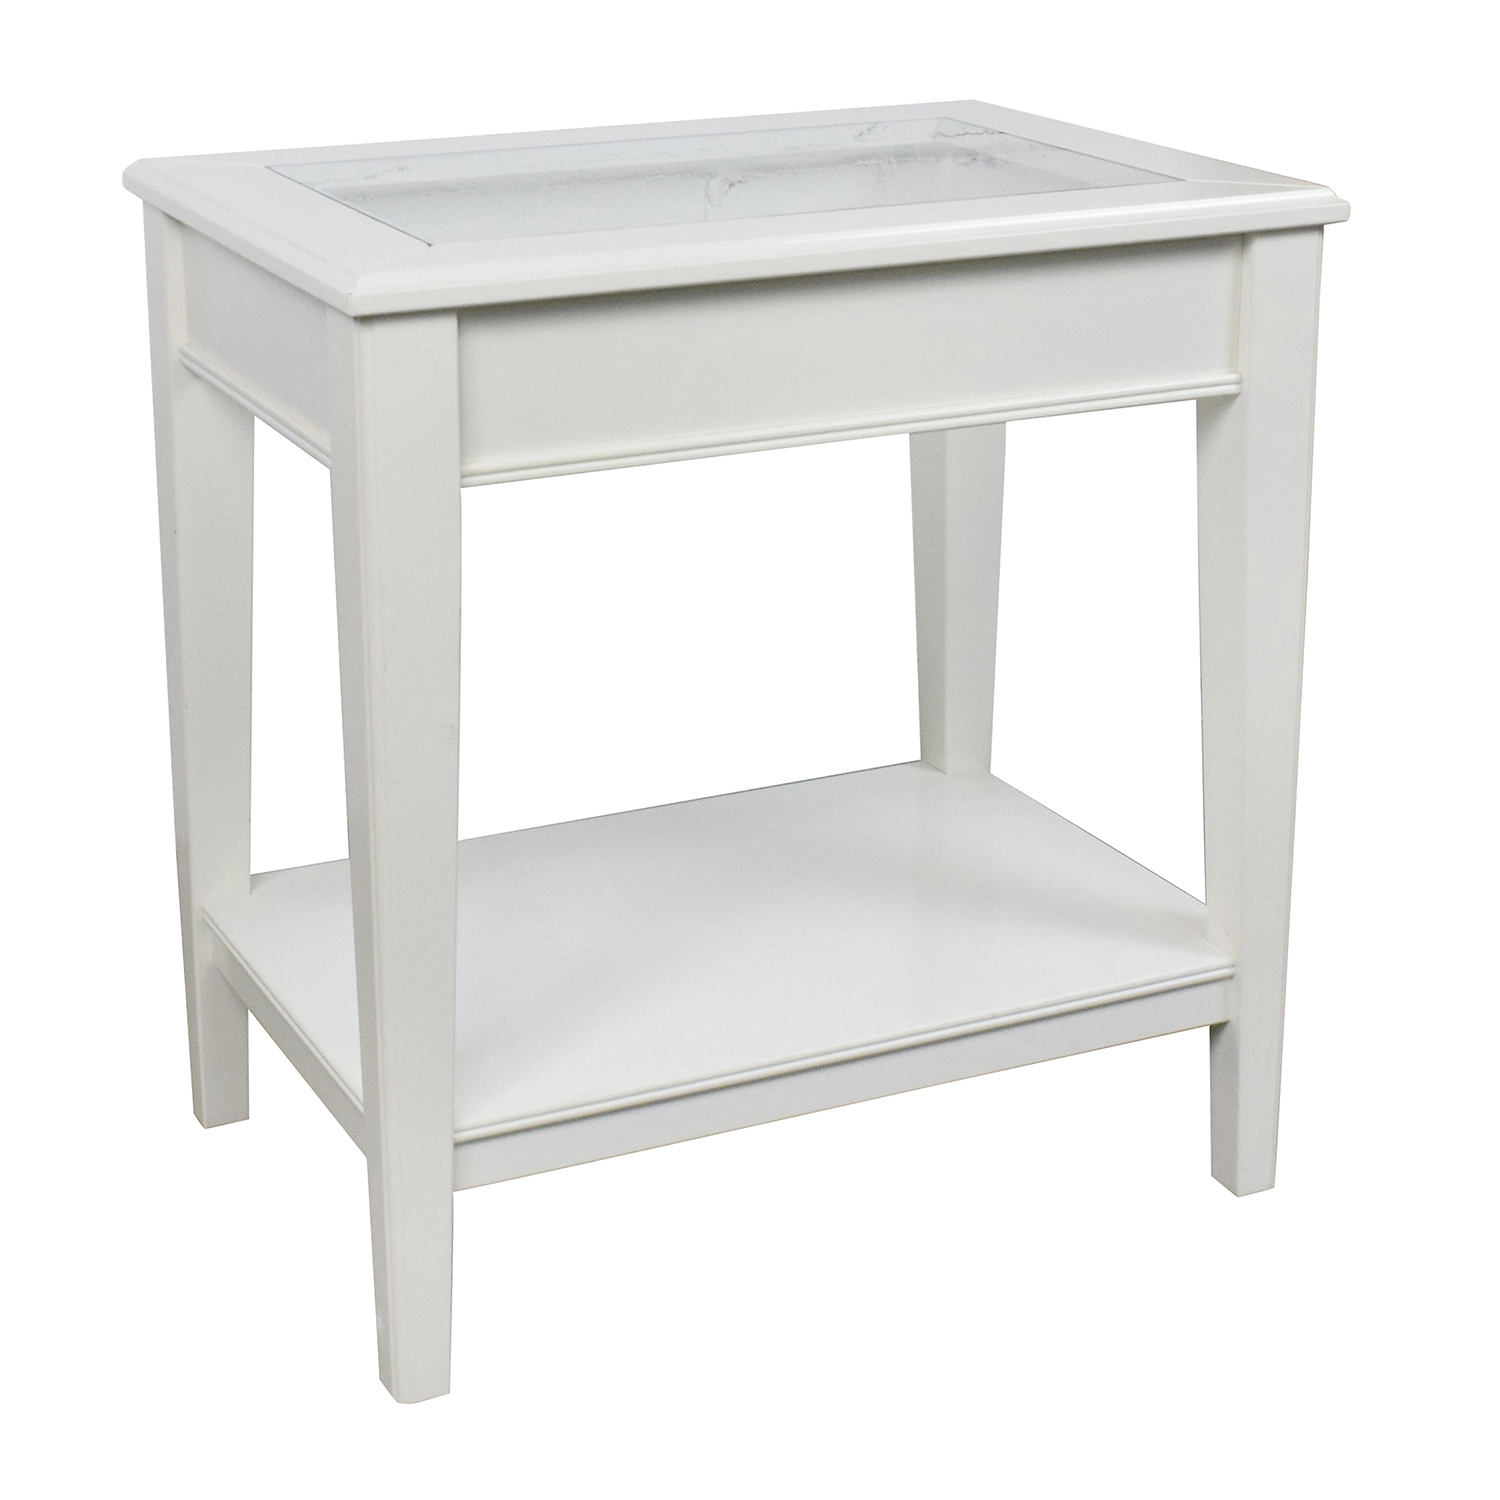 85 off west elm west elm white glass and wood side